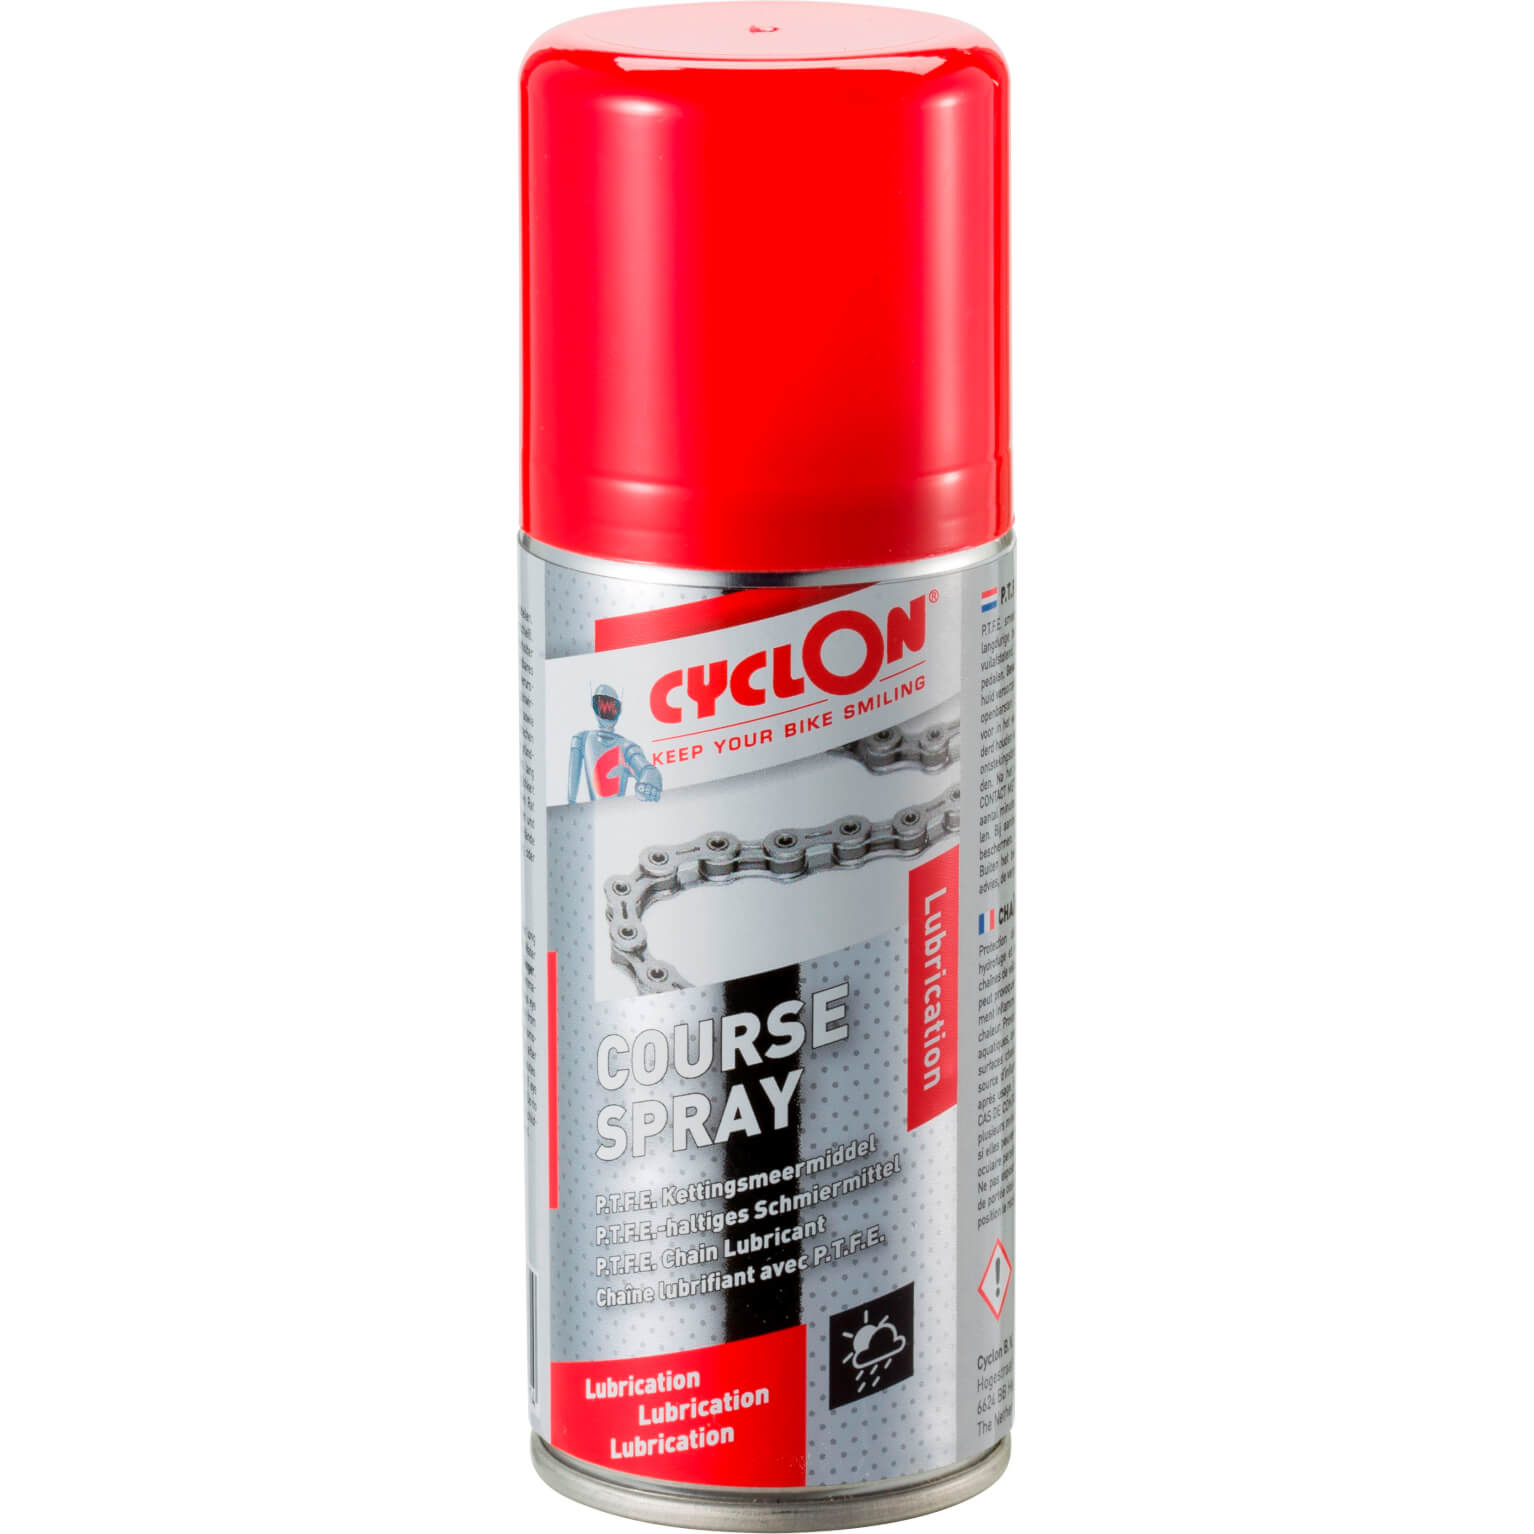 Cyclon Course Spray 100Ml